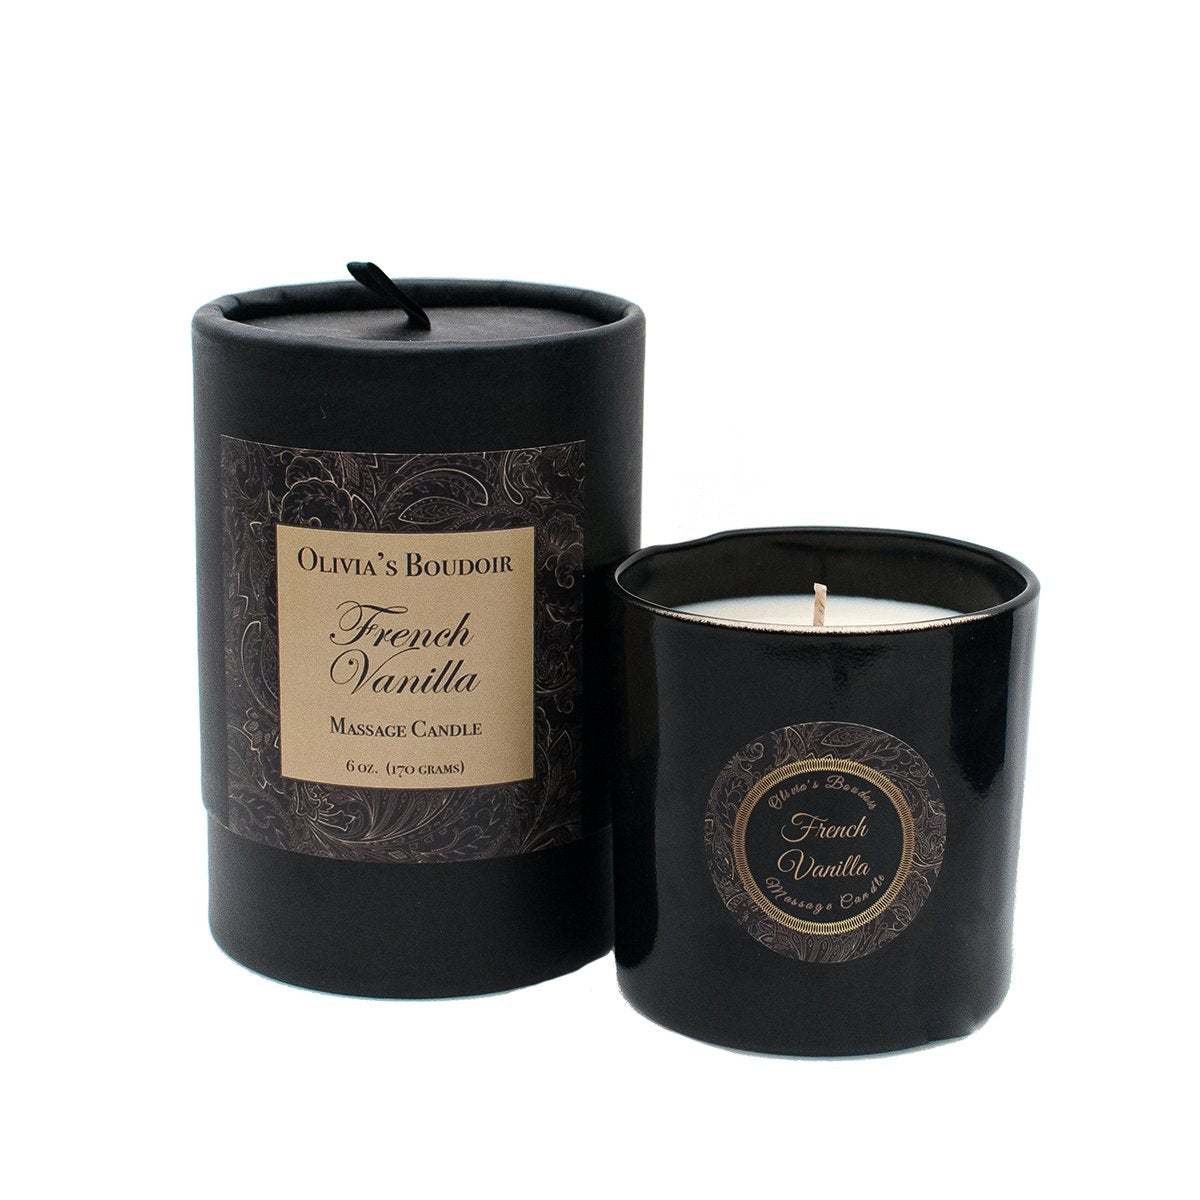 Rosy Brown Olivia's Boudoir Candle 6.5oz - French Vanilla